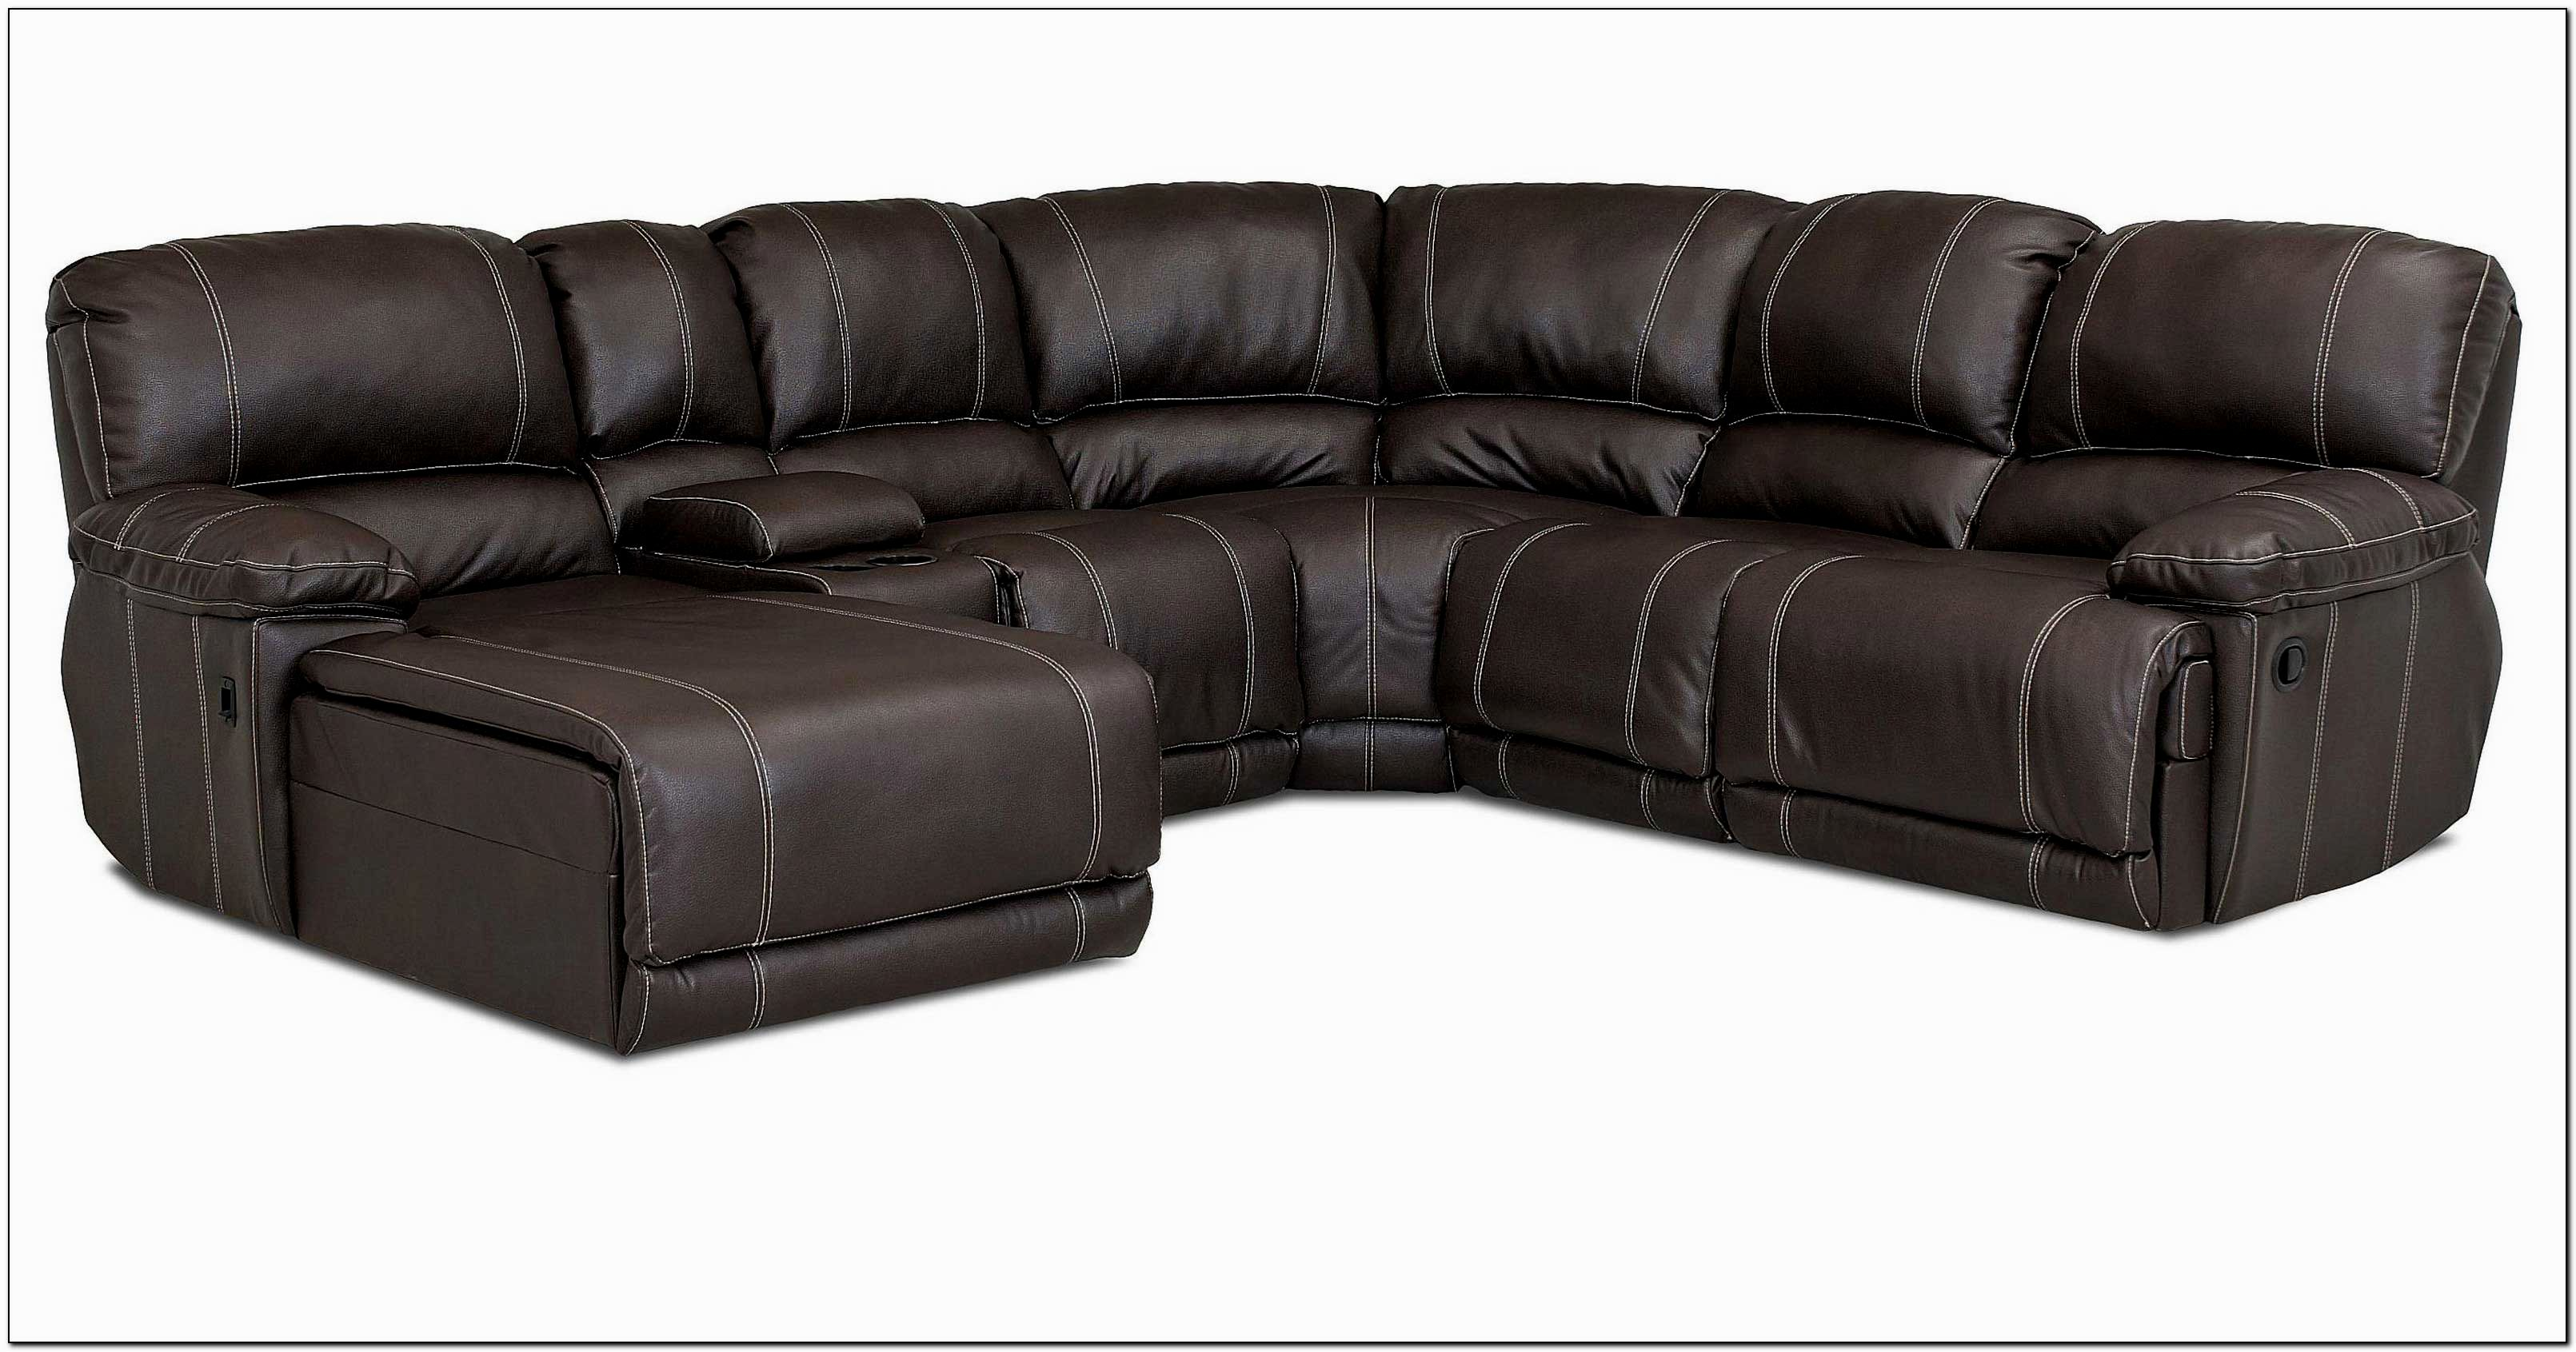 finest chaise sectional sofa design-Luxury Chaise Sectional sofa Décor